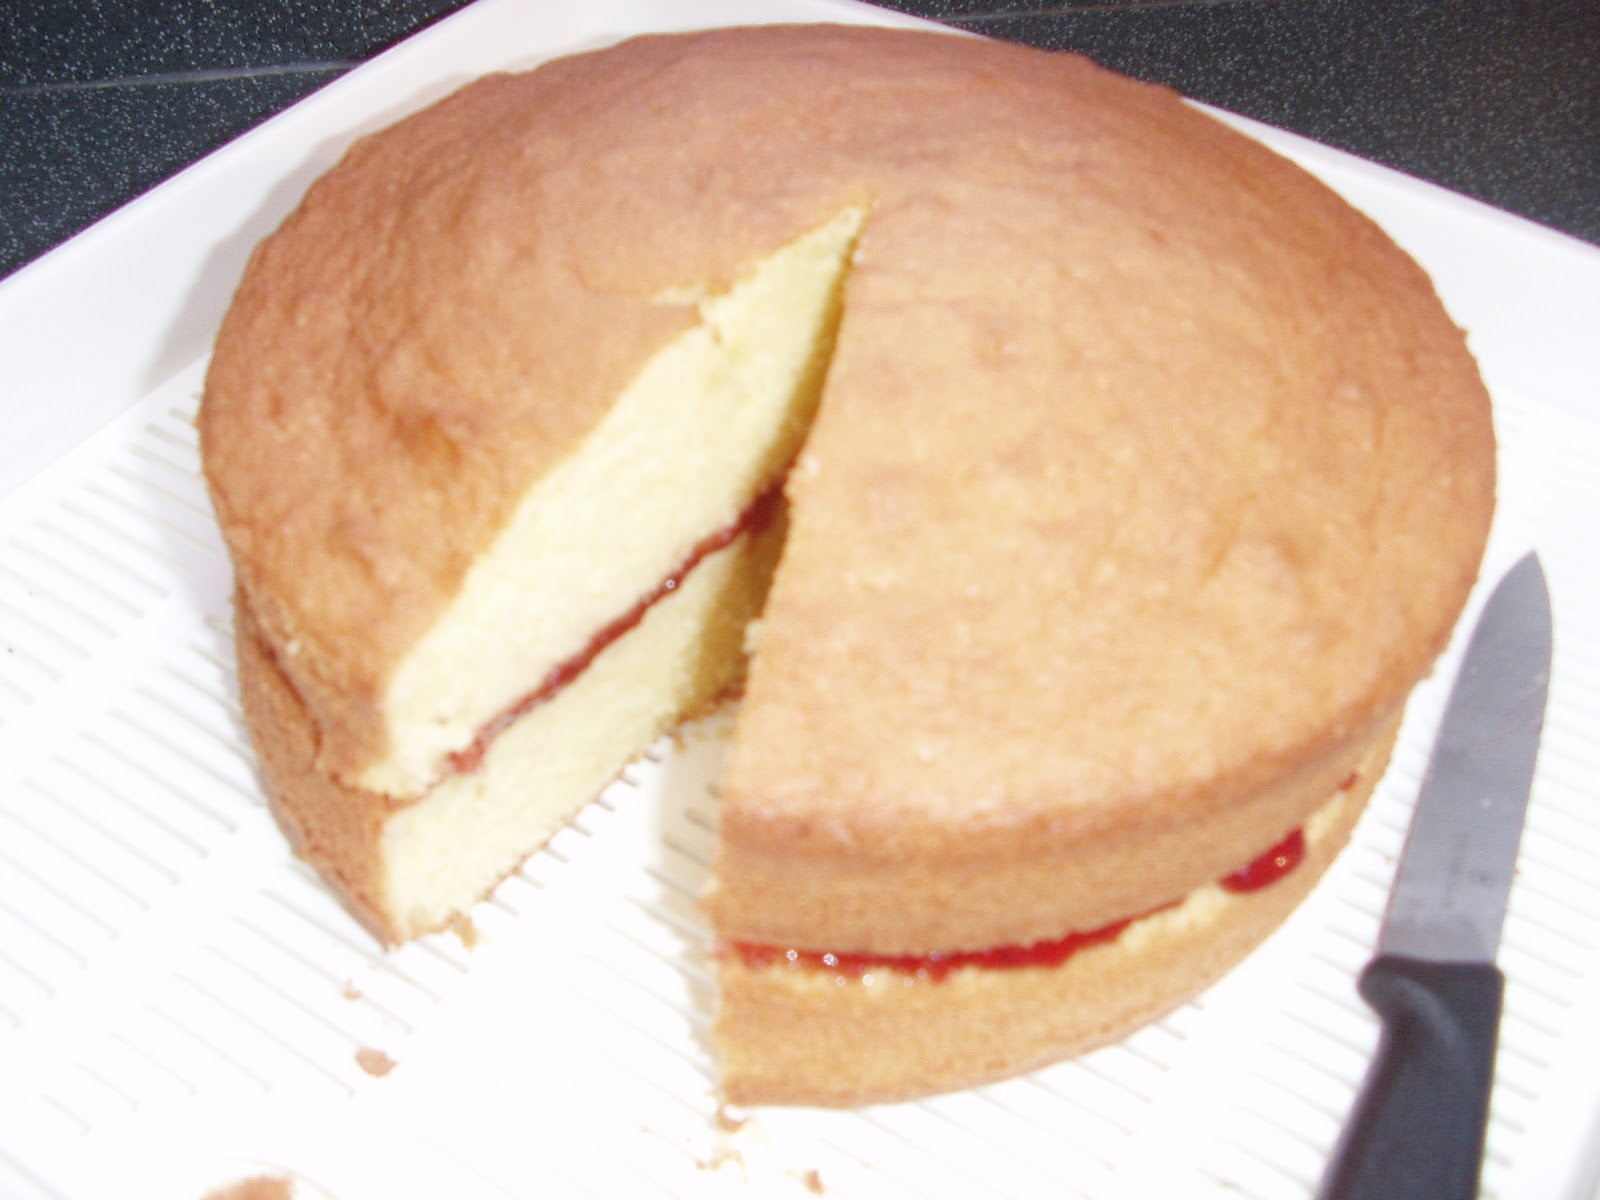 Sponge Cake Artinya : simple yummy food: Basic sponge cake with strawberry jam